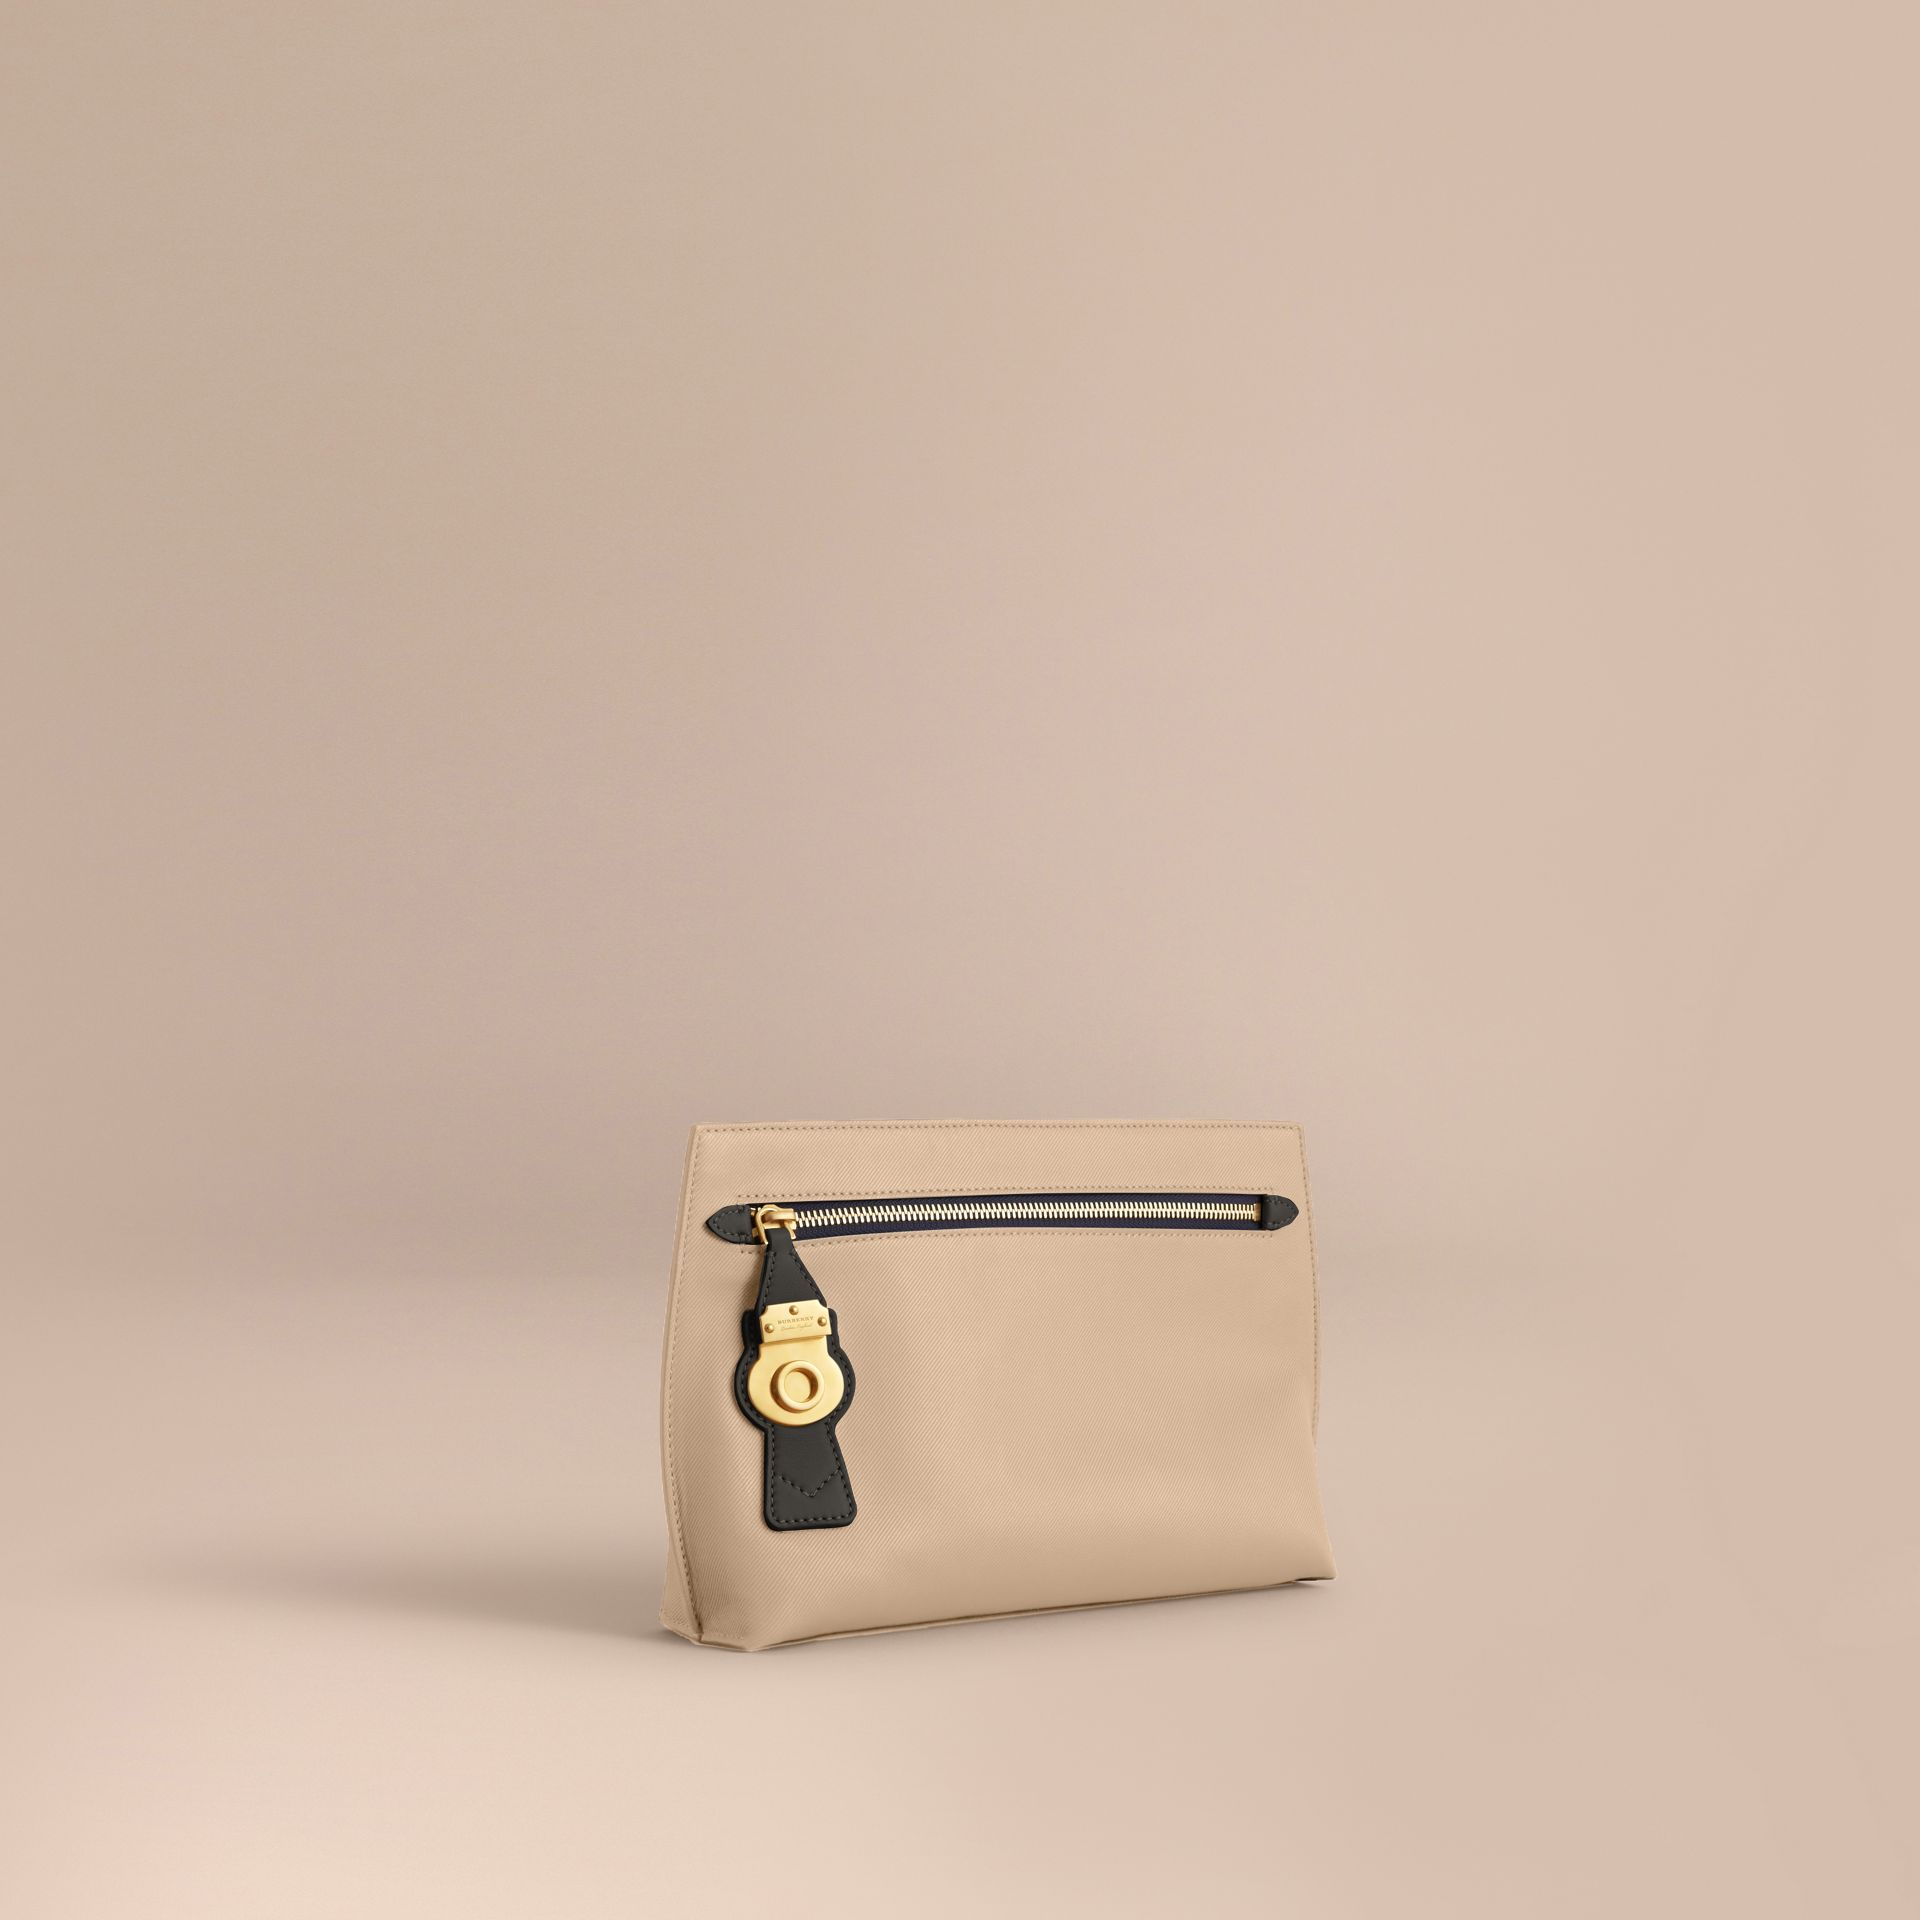 Two-tone Trench Leather Wristlet Pouch in Limestone/black - Women | Burberry - gallery image 1